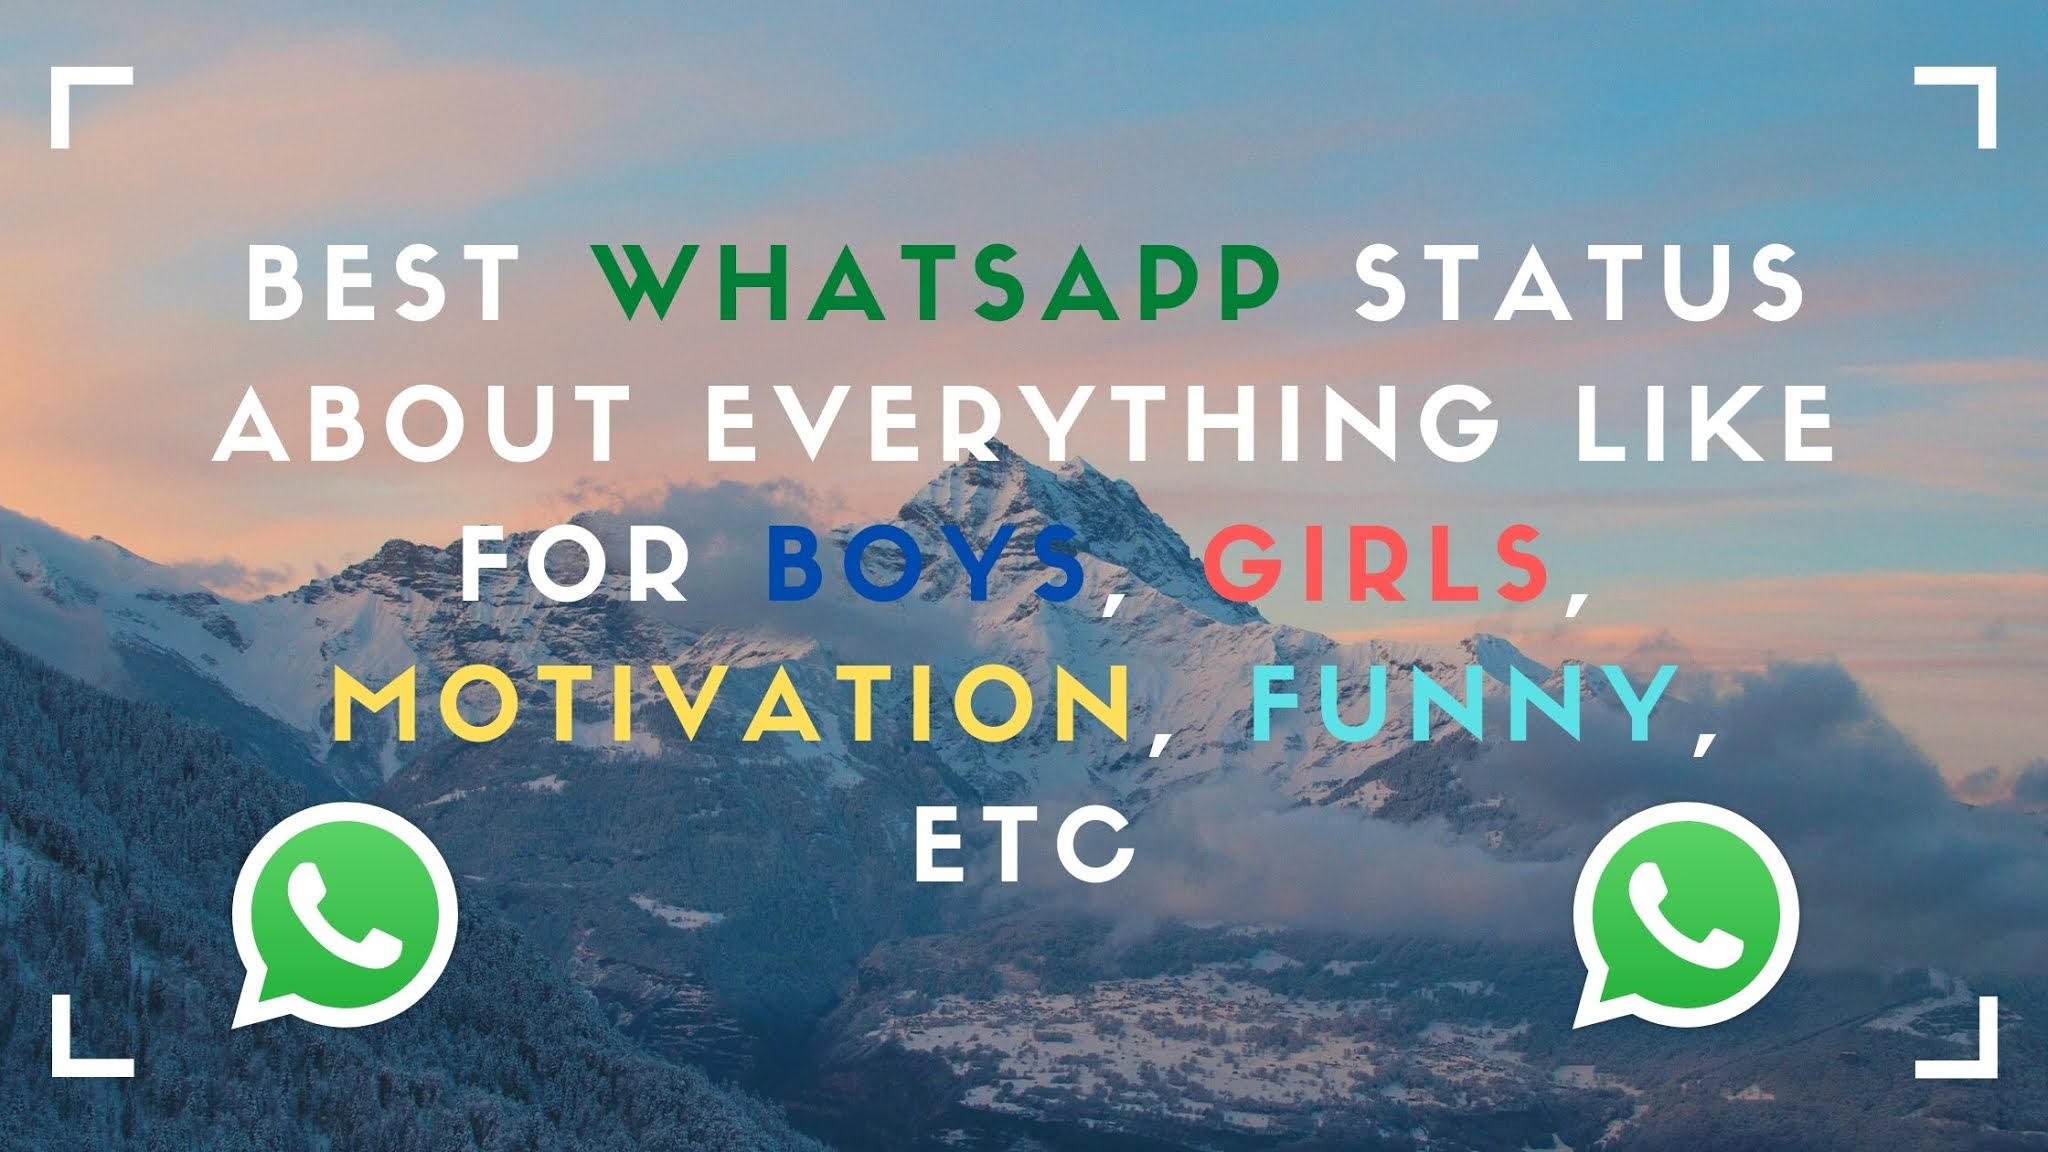 Whatsapp status quotes and images about everything